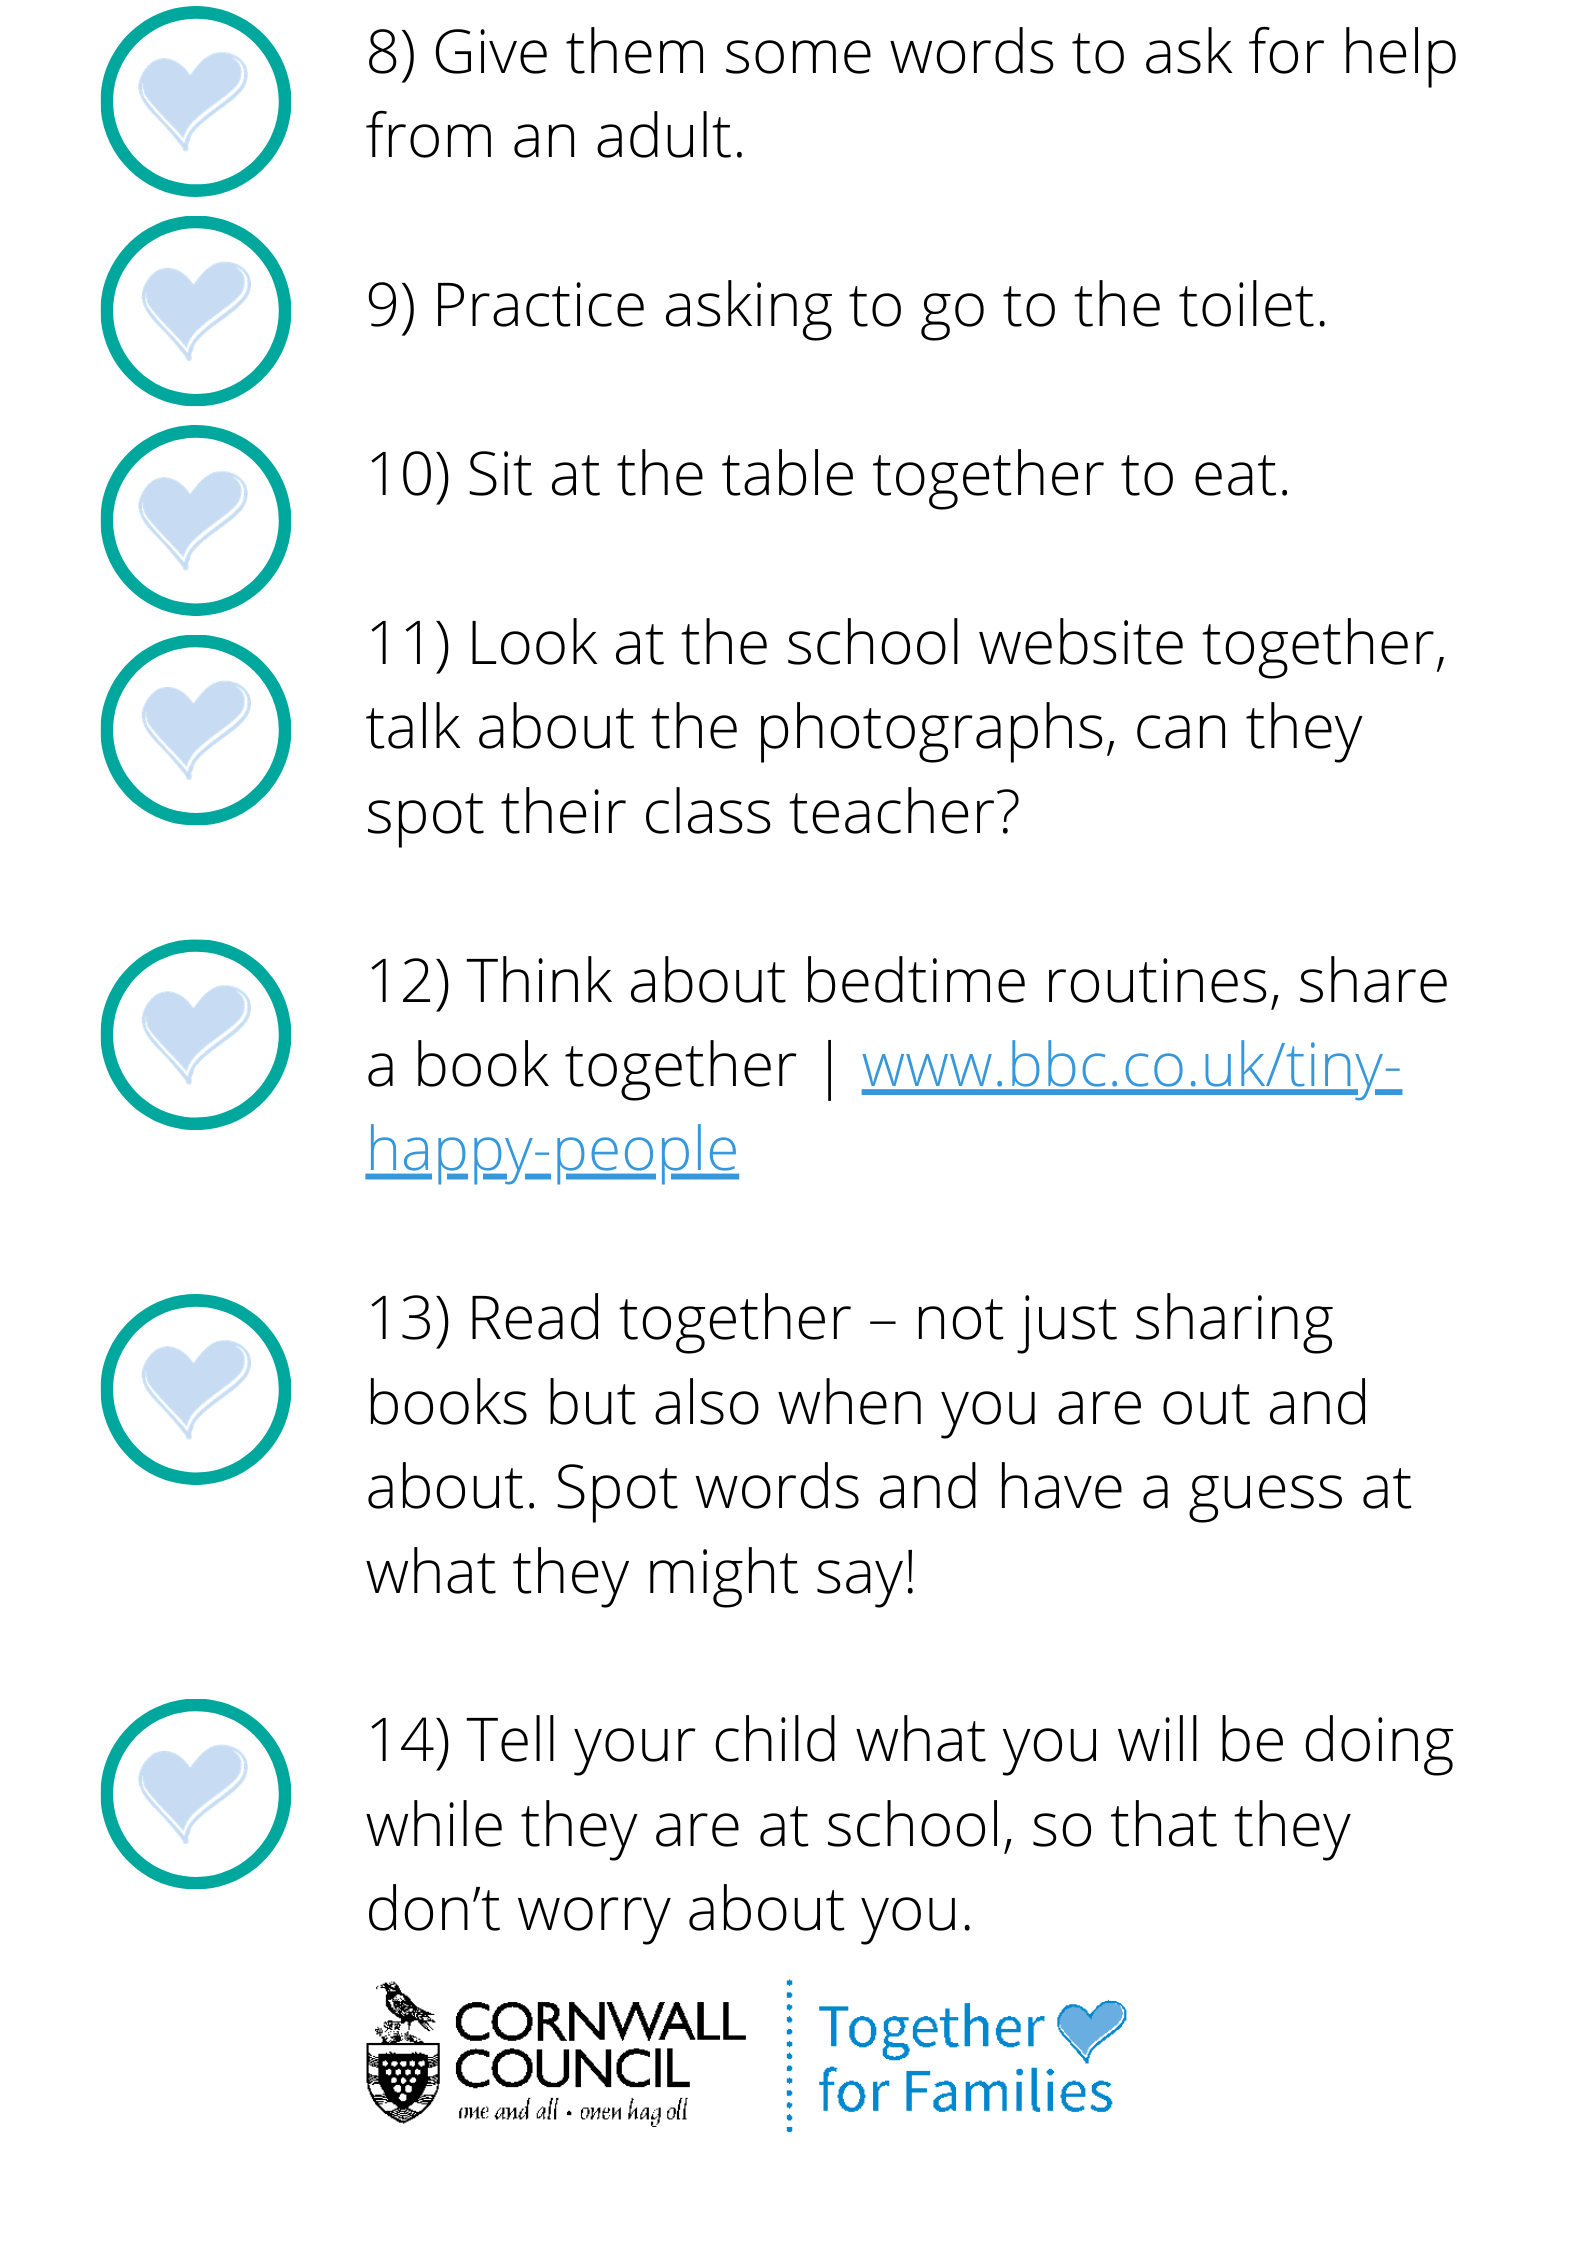 Give them some words to ask for help from an adult. Practice asking to go to the toilet Sit at the table together to eat Look at the school website together, talk about the photographs, can they spot their class teacher? Think about bedtime routines, share a story together. For ideas visit the BBC tiny happy people website. Read together – not just sharing books but also when you are out and about. Spot words and have a guess at what they might say!  Tell your child what you will be doing while they are at school, so that they don't worry about you